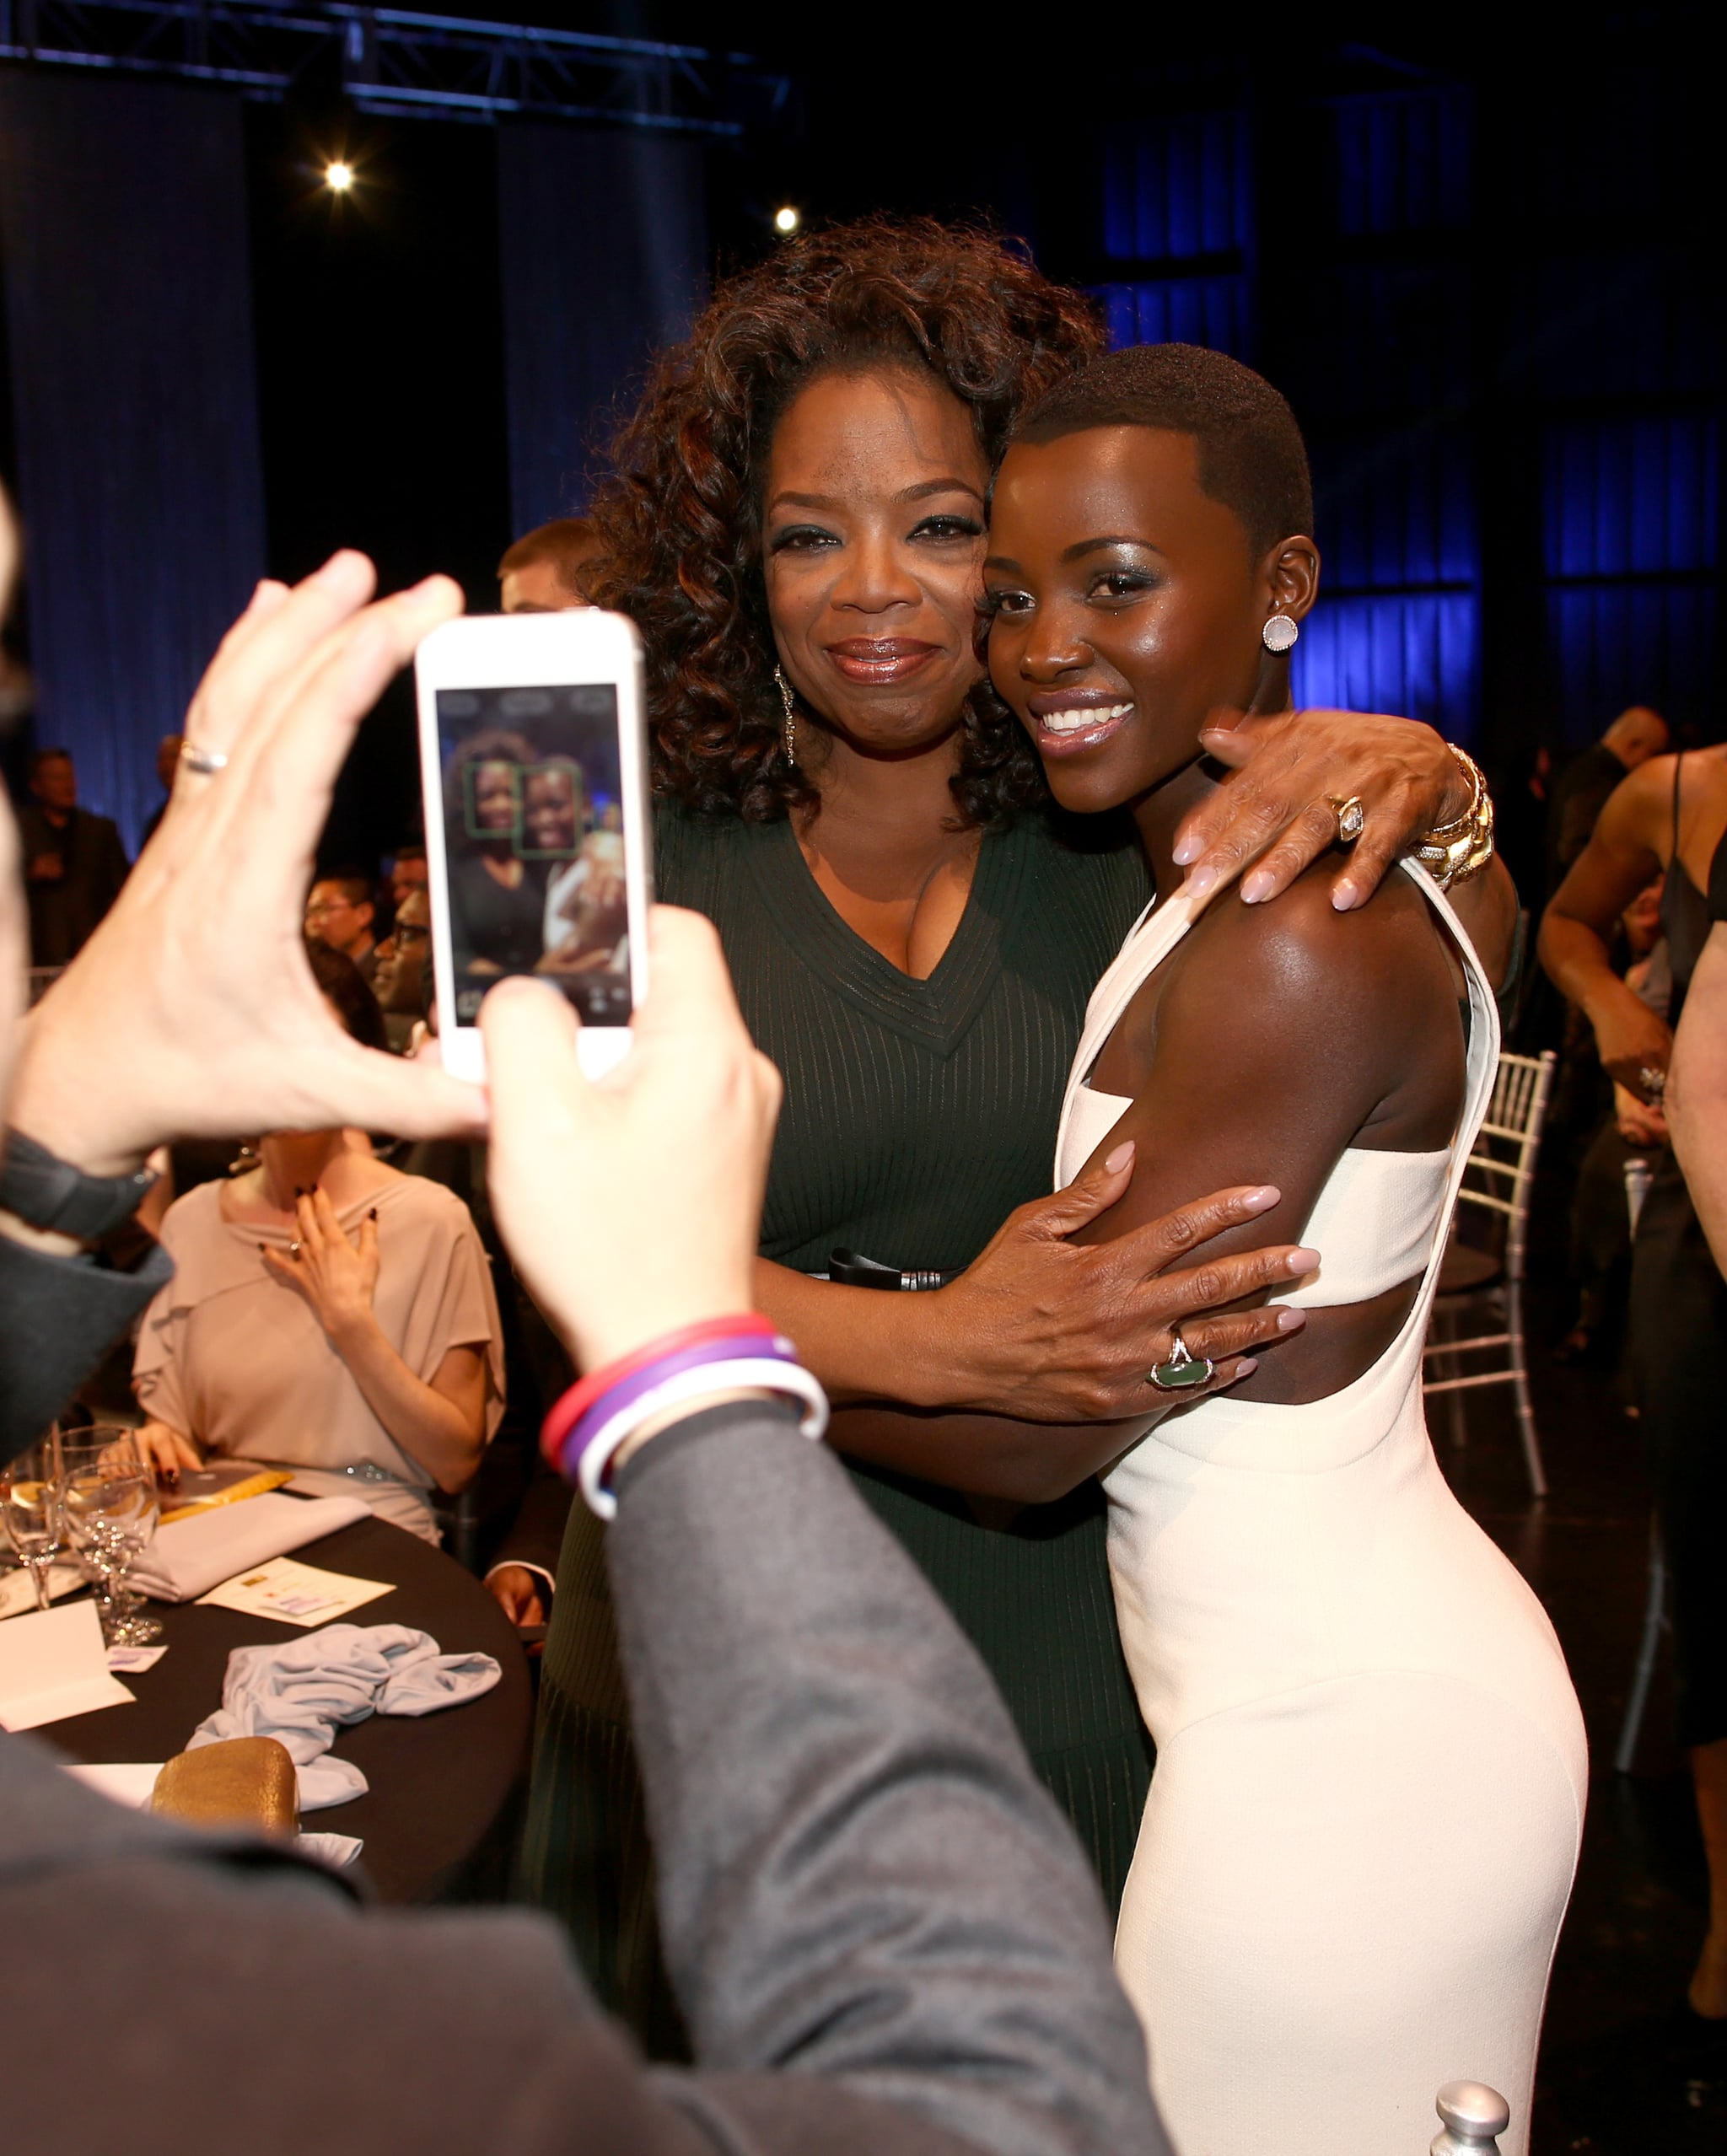 Lupita Nyong'o and Oprah posed for a photo inside the Critics' Choice Awards.